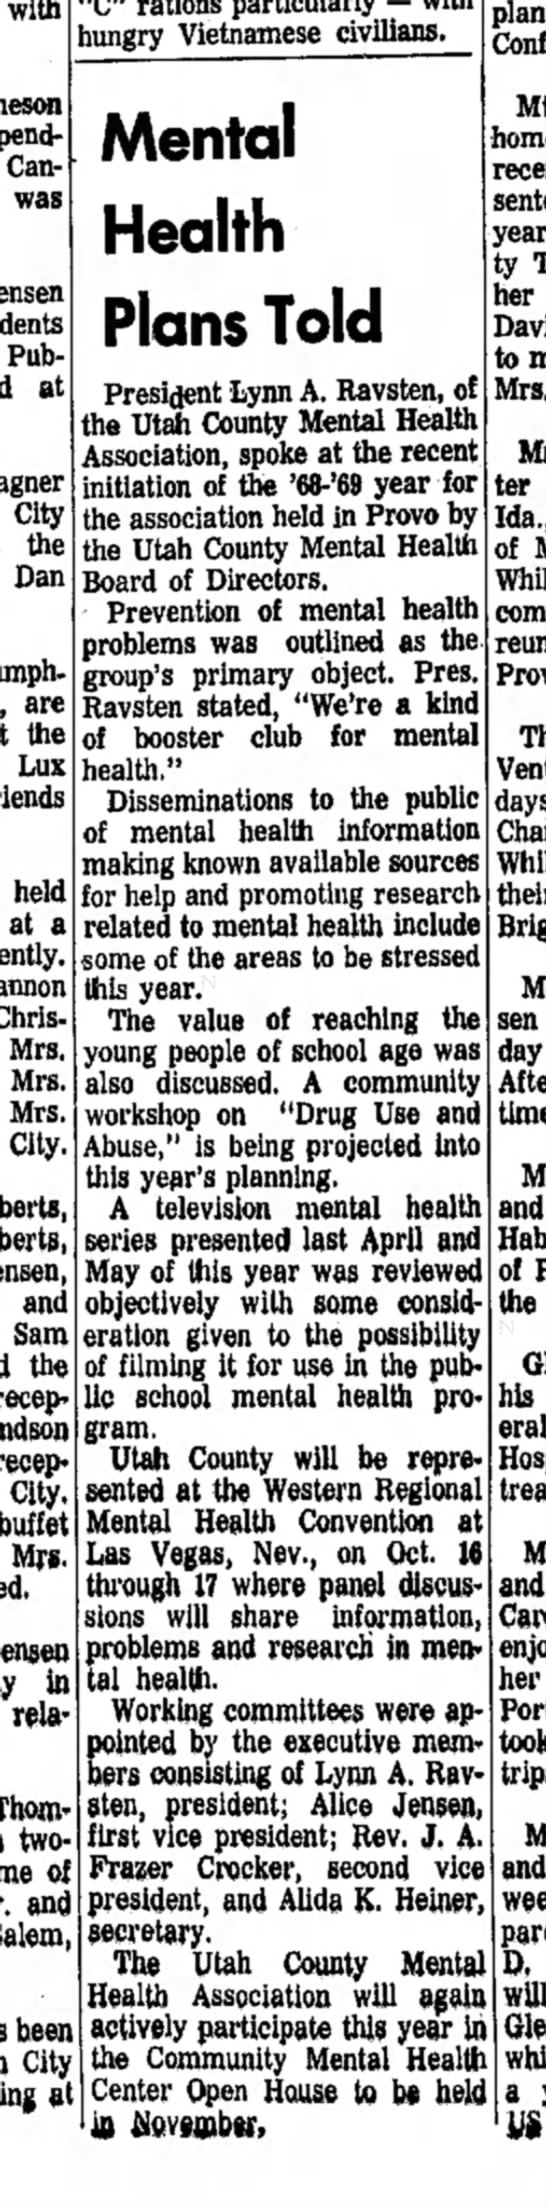 Sept 19, 1968 - Daily Herald - Thursday - with spending Canyon was Publications at City...